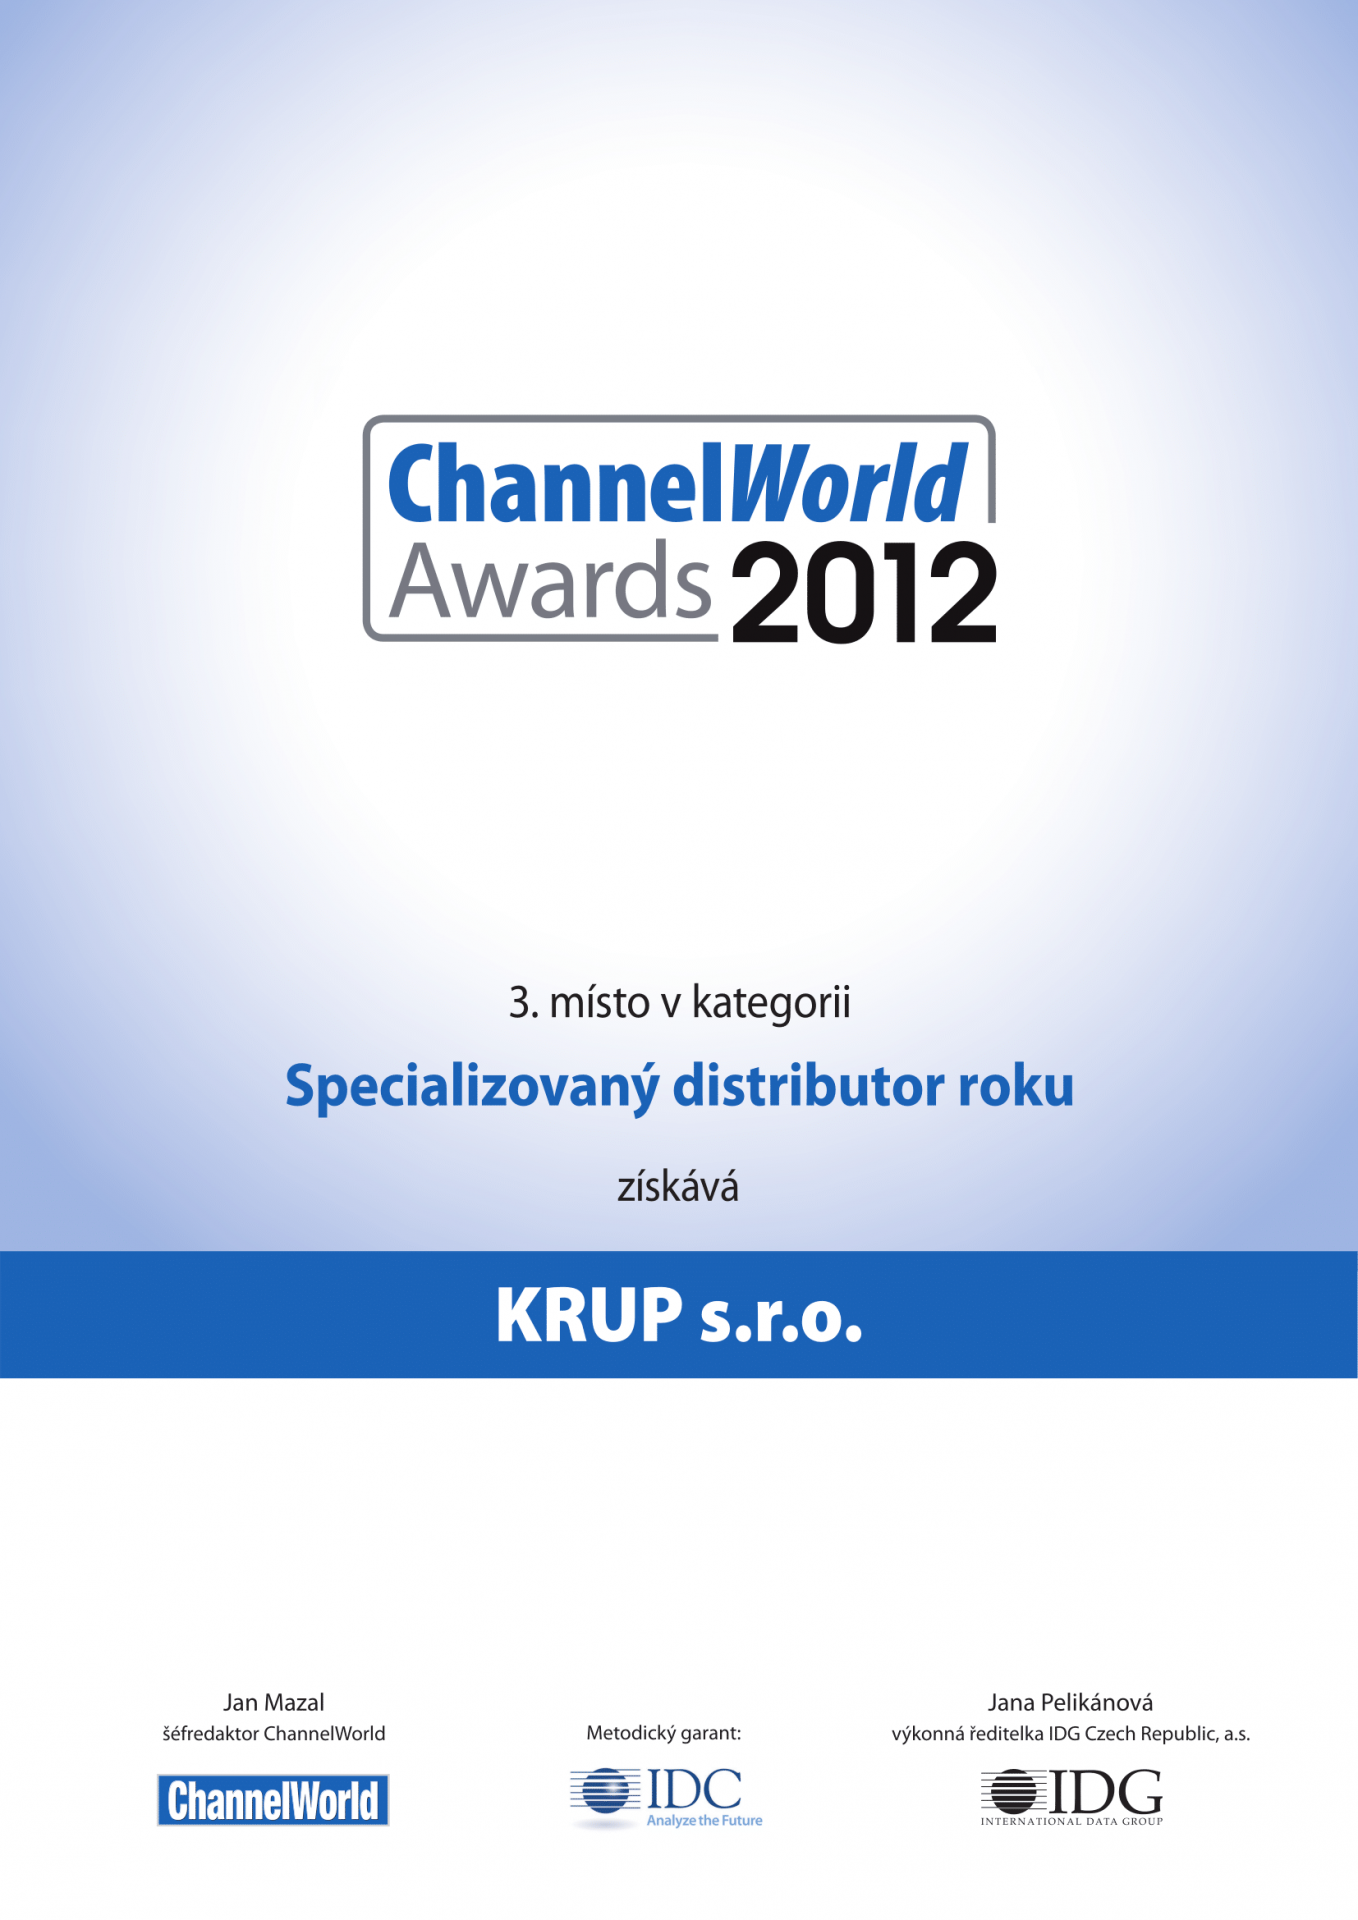 ChannelWorld 2012 third place